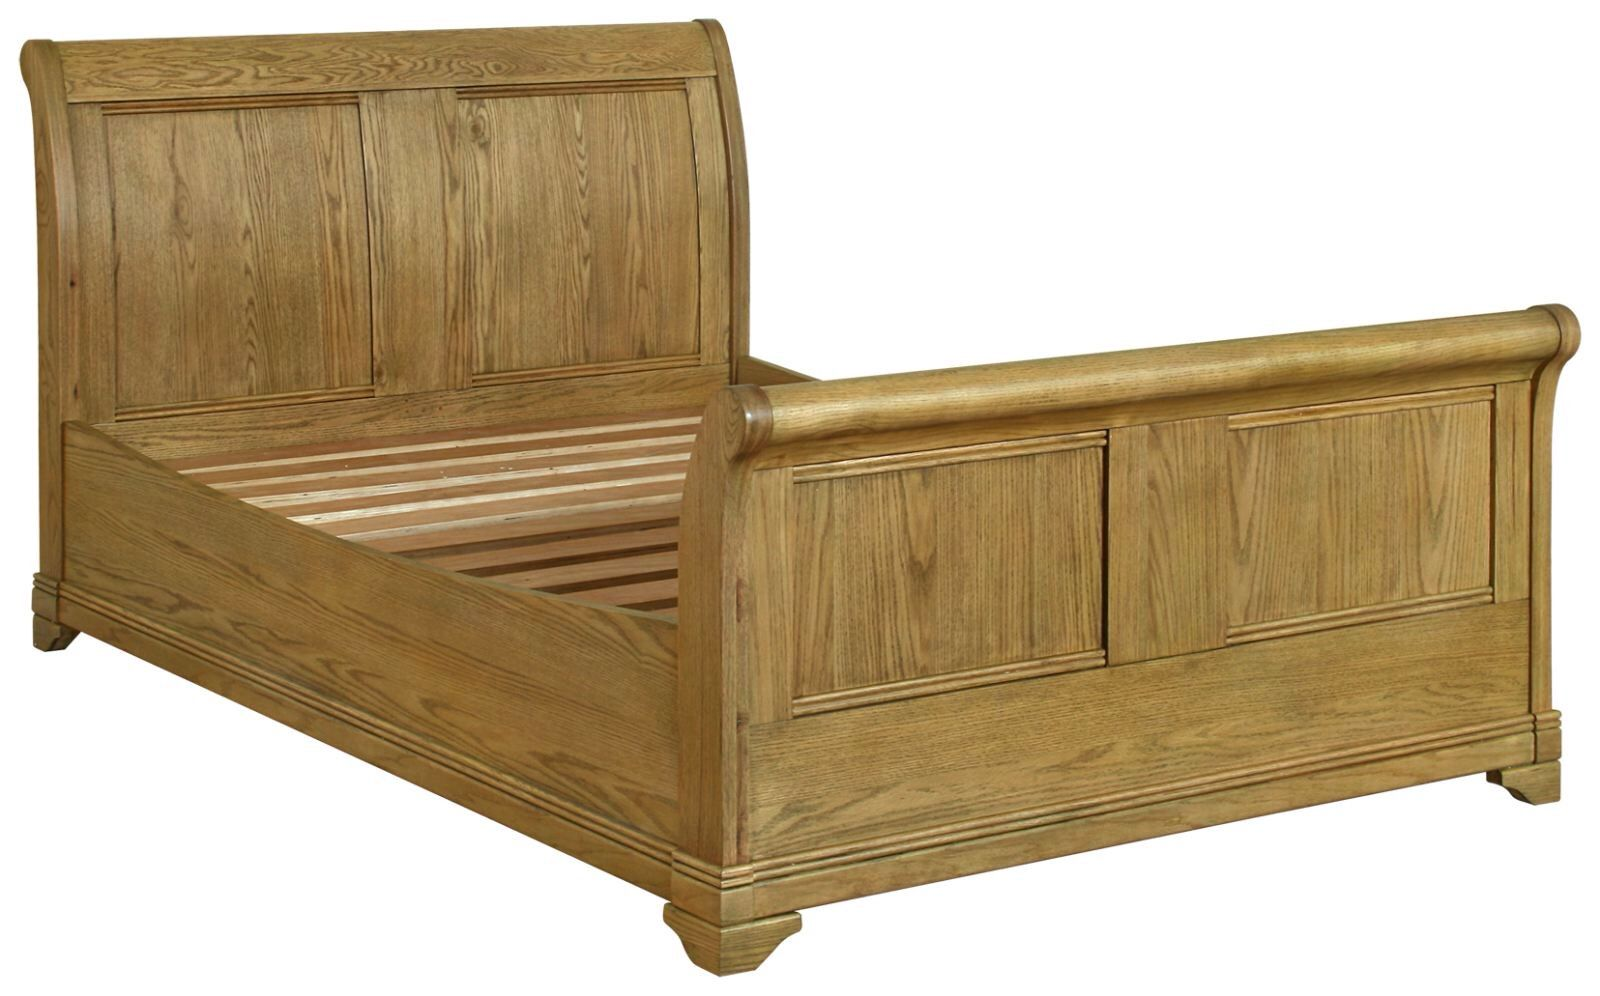 Highly sprung trade chateau oak double bed beds at trade prices